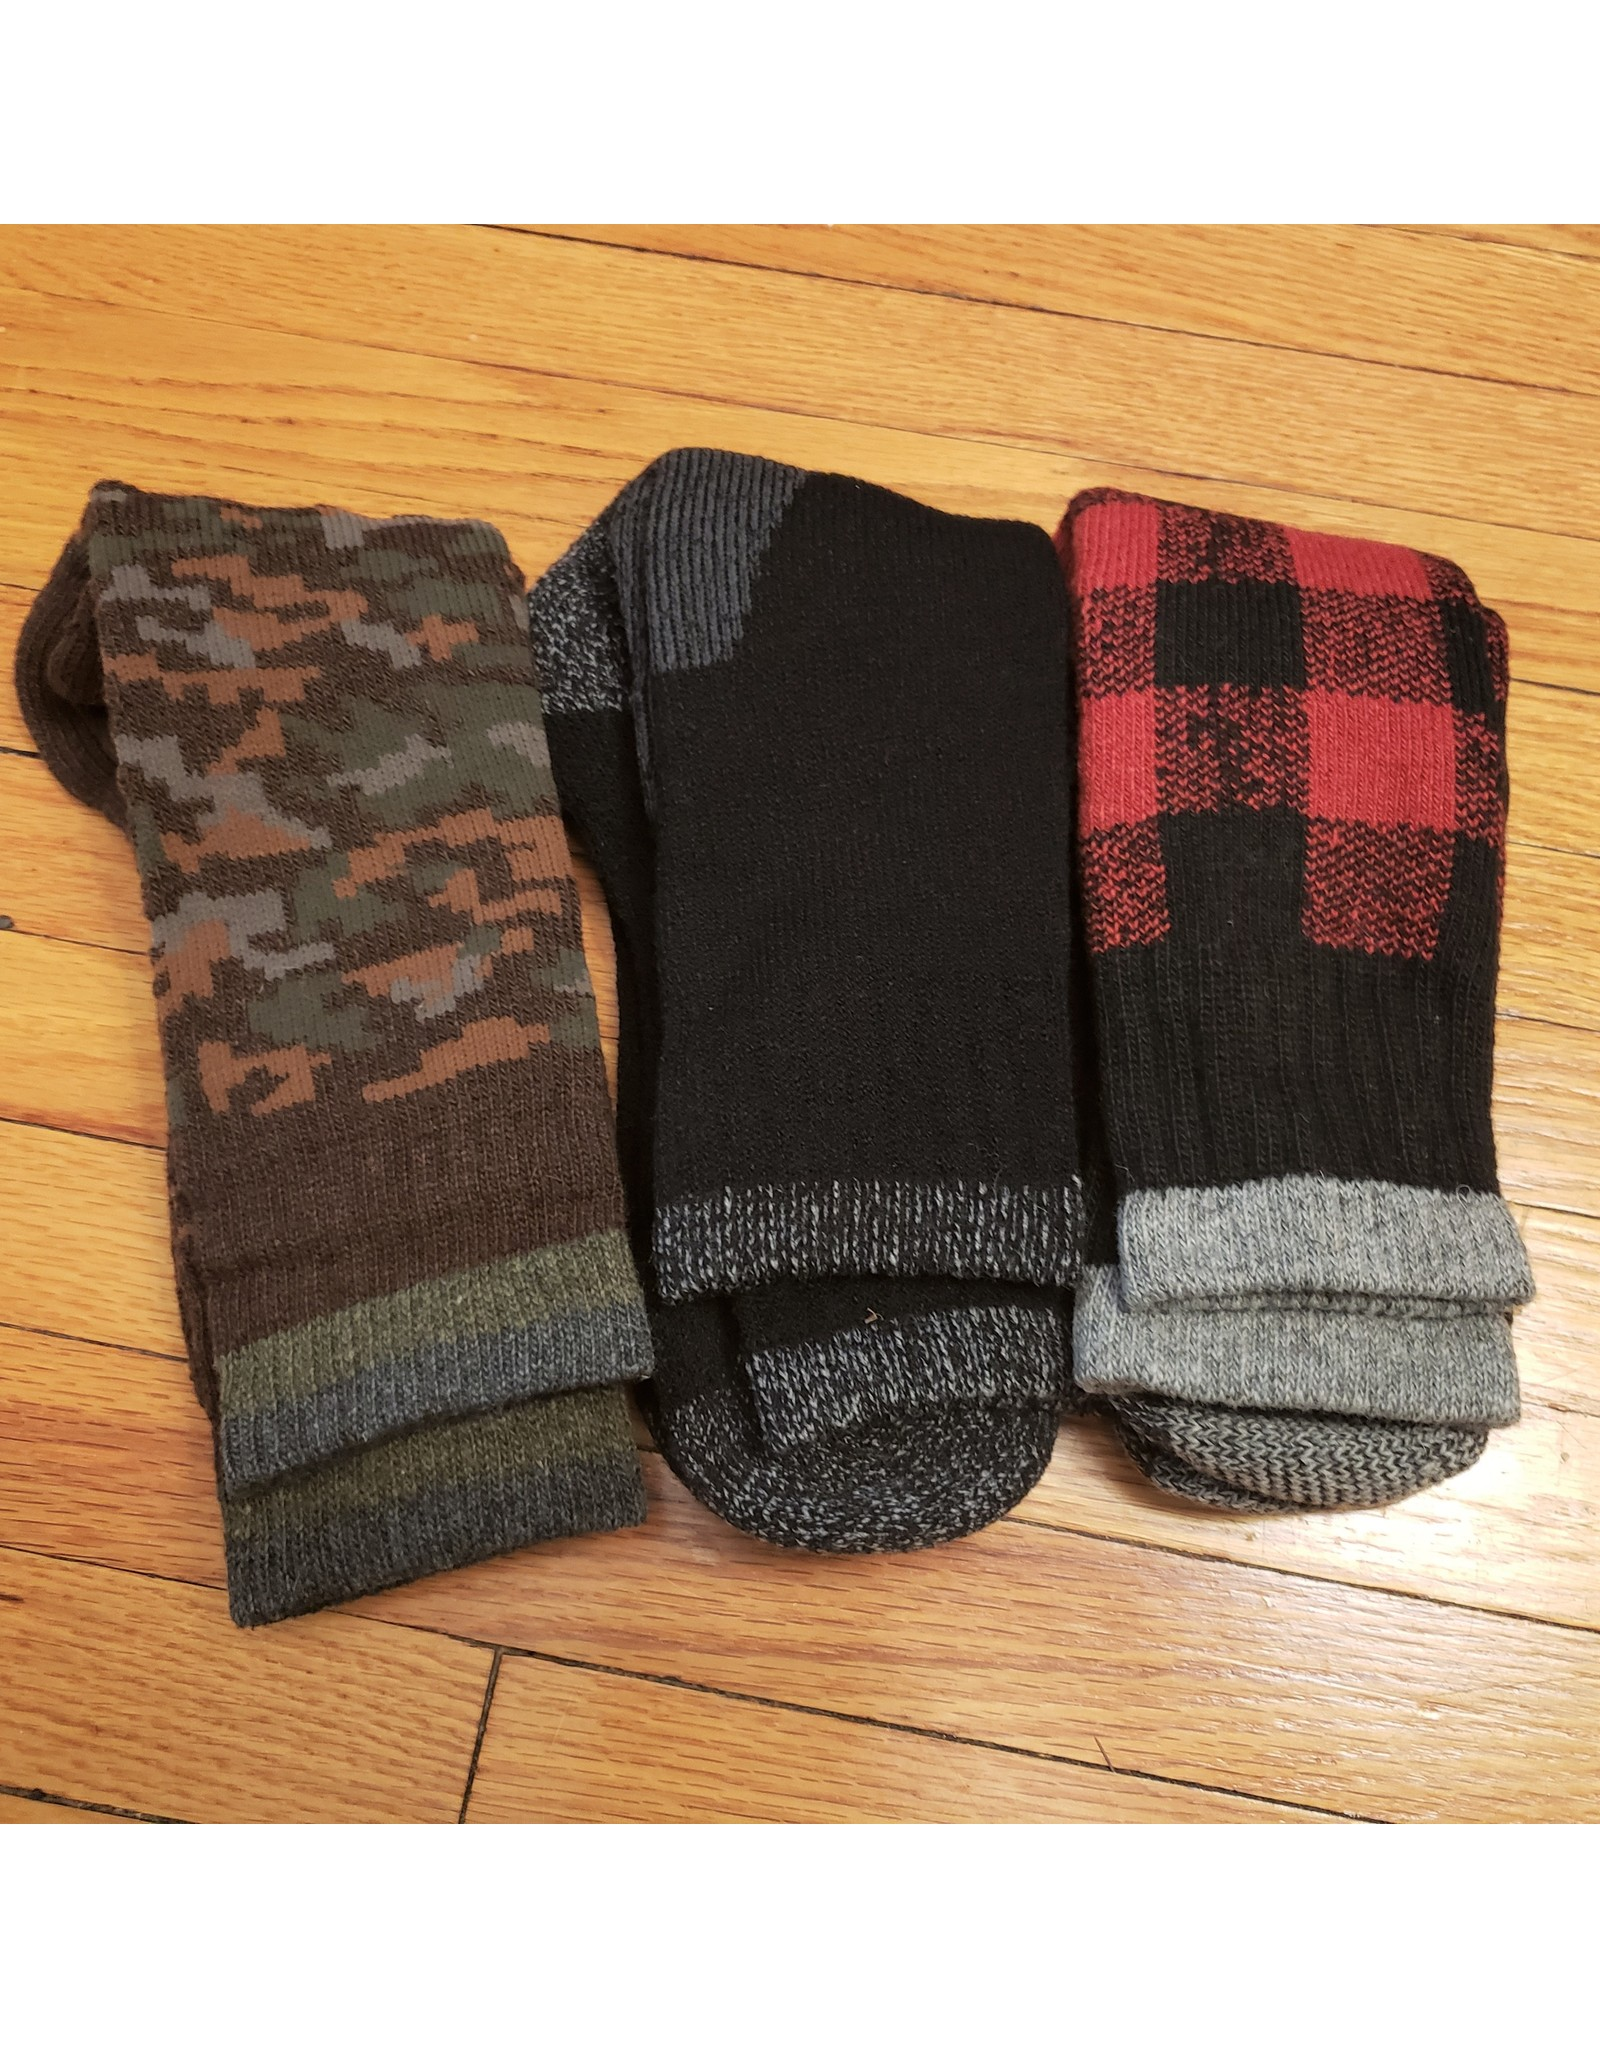 MAJOR SURPLUS DIXIE WOOL BLEND 3PK SOCK